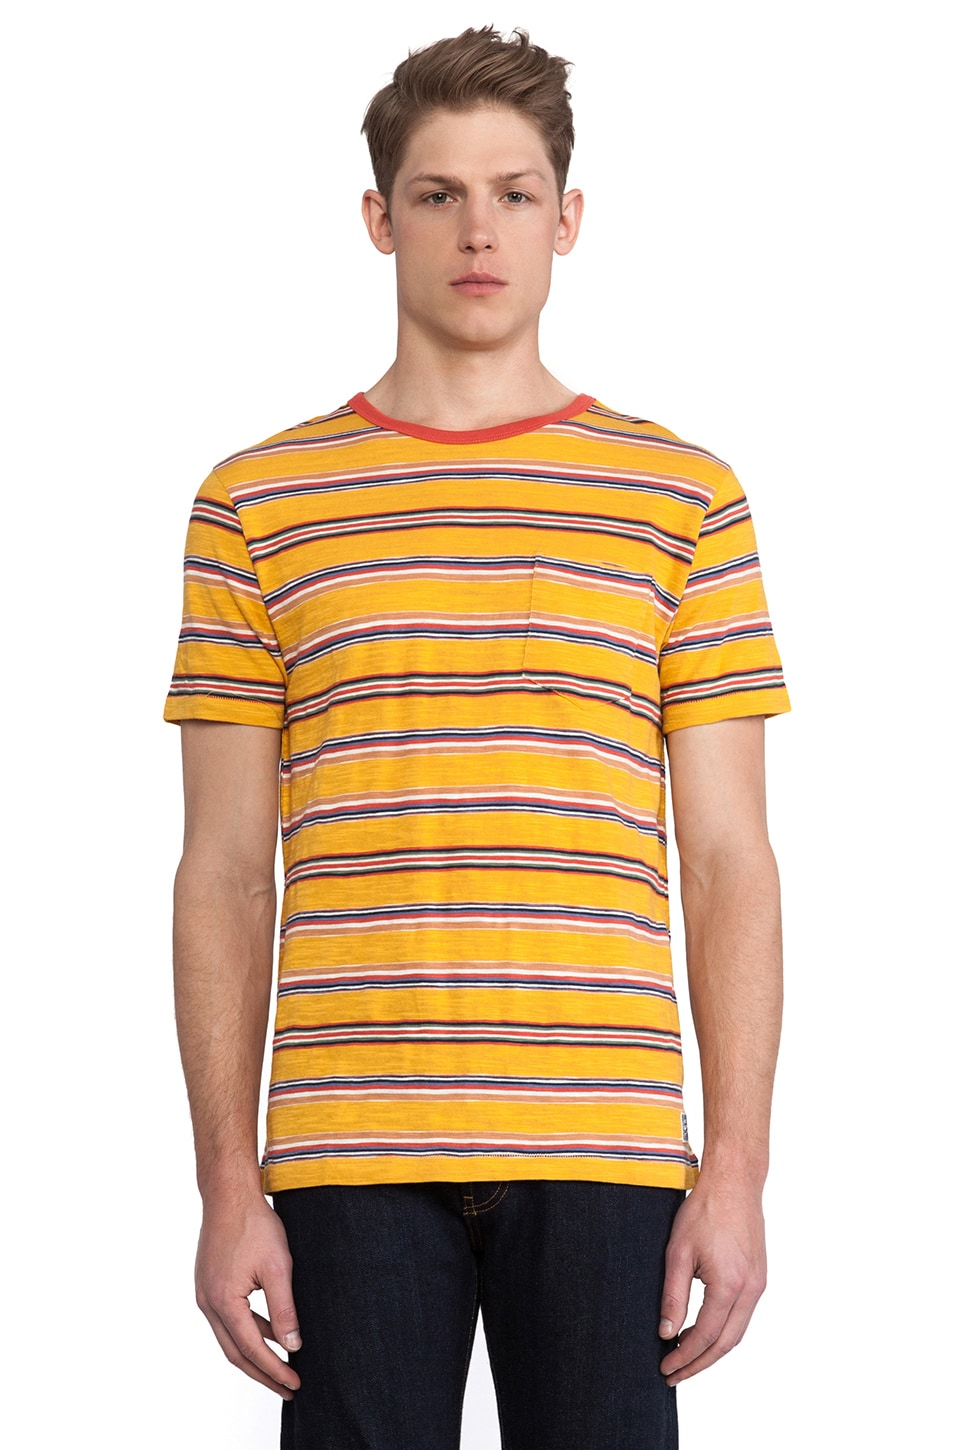 Deus Ex Machina Mewson Tee in Beeswax